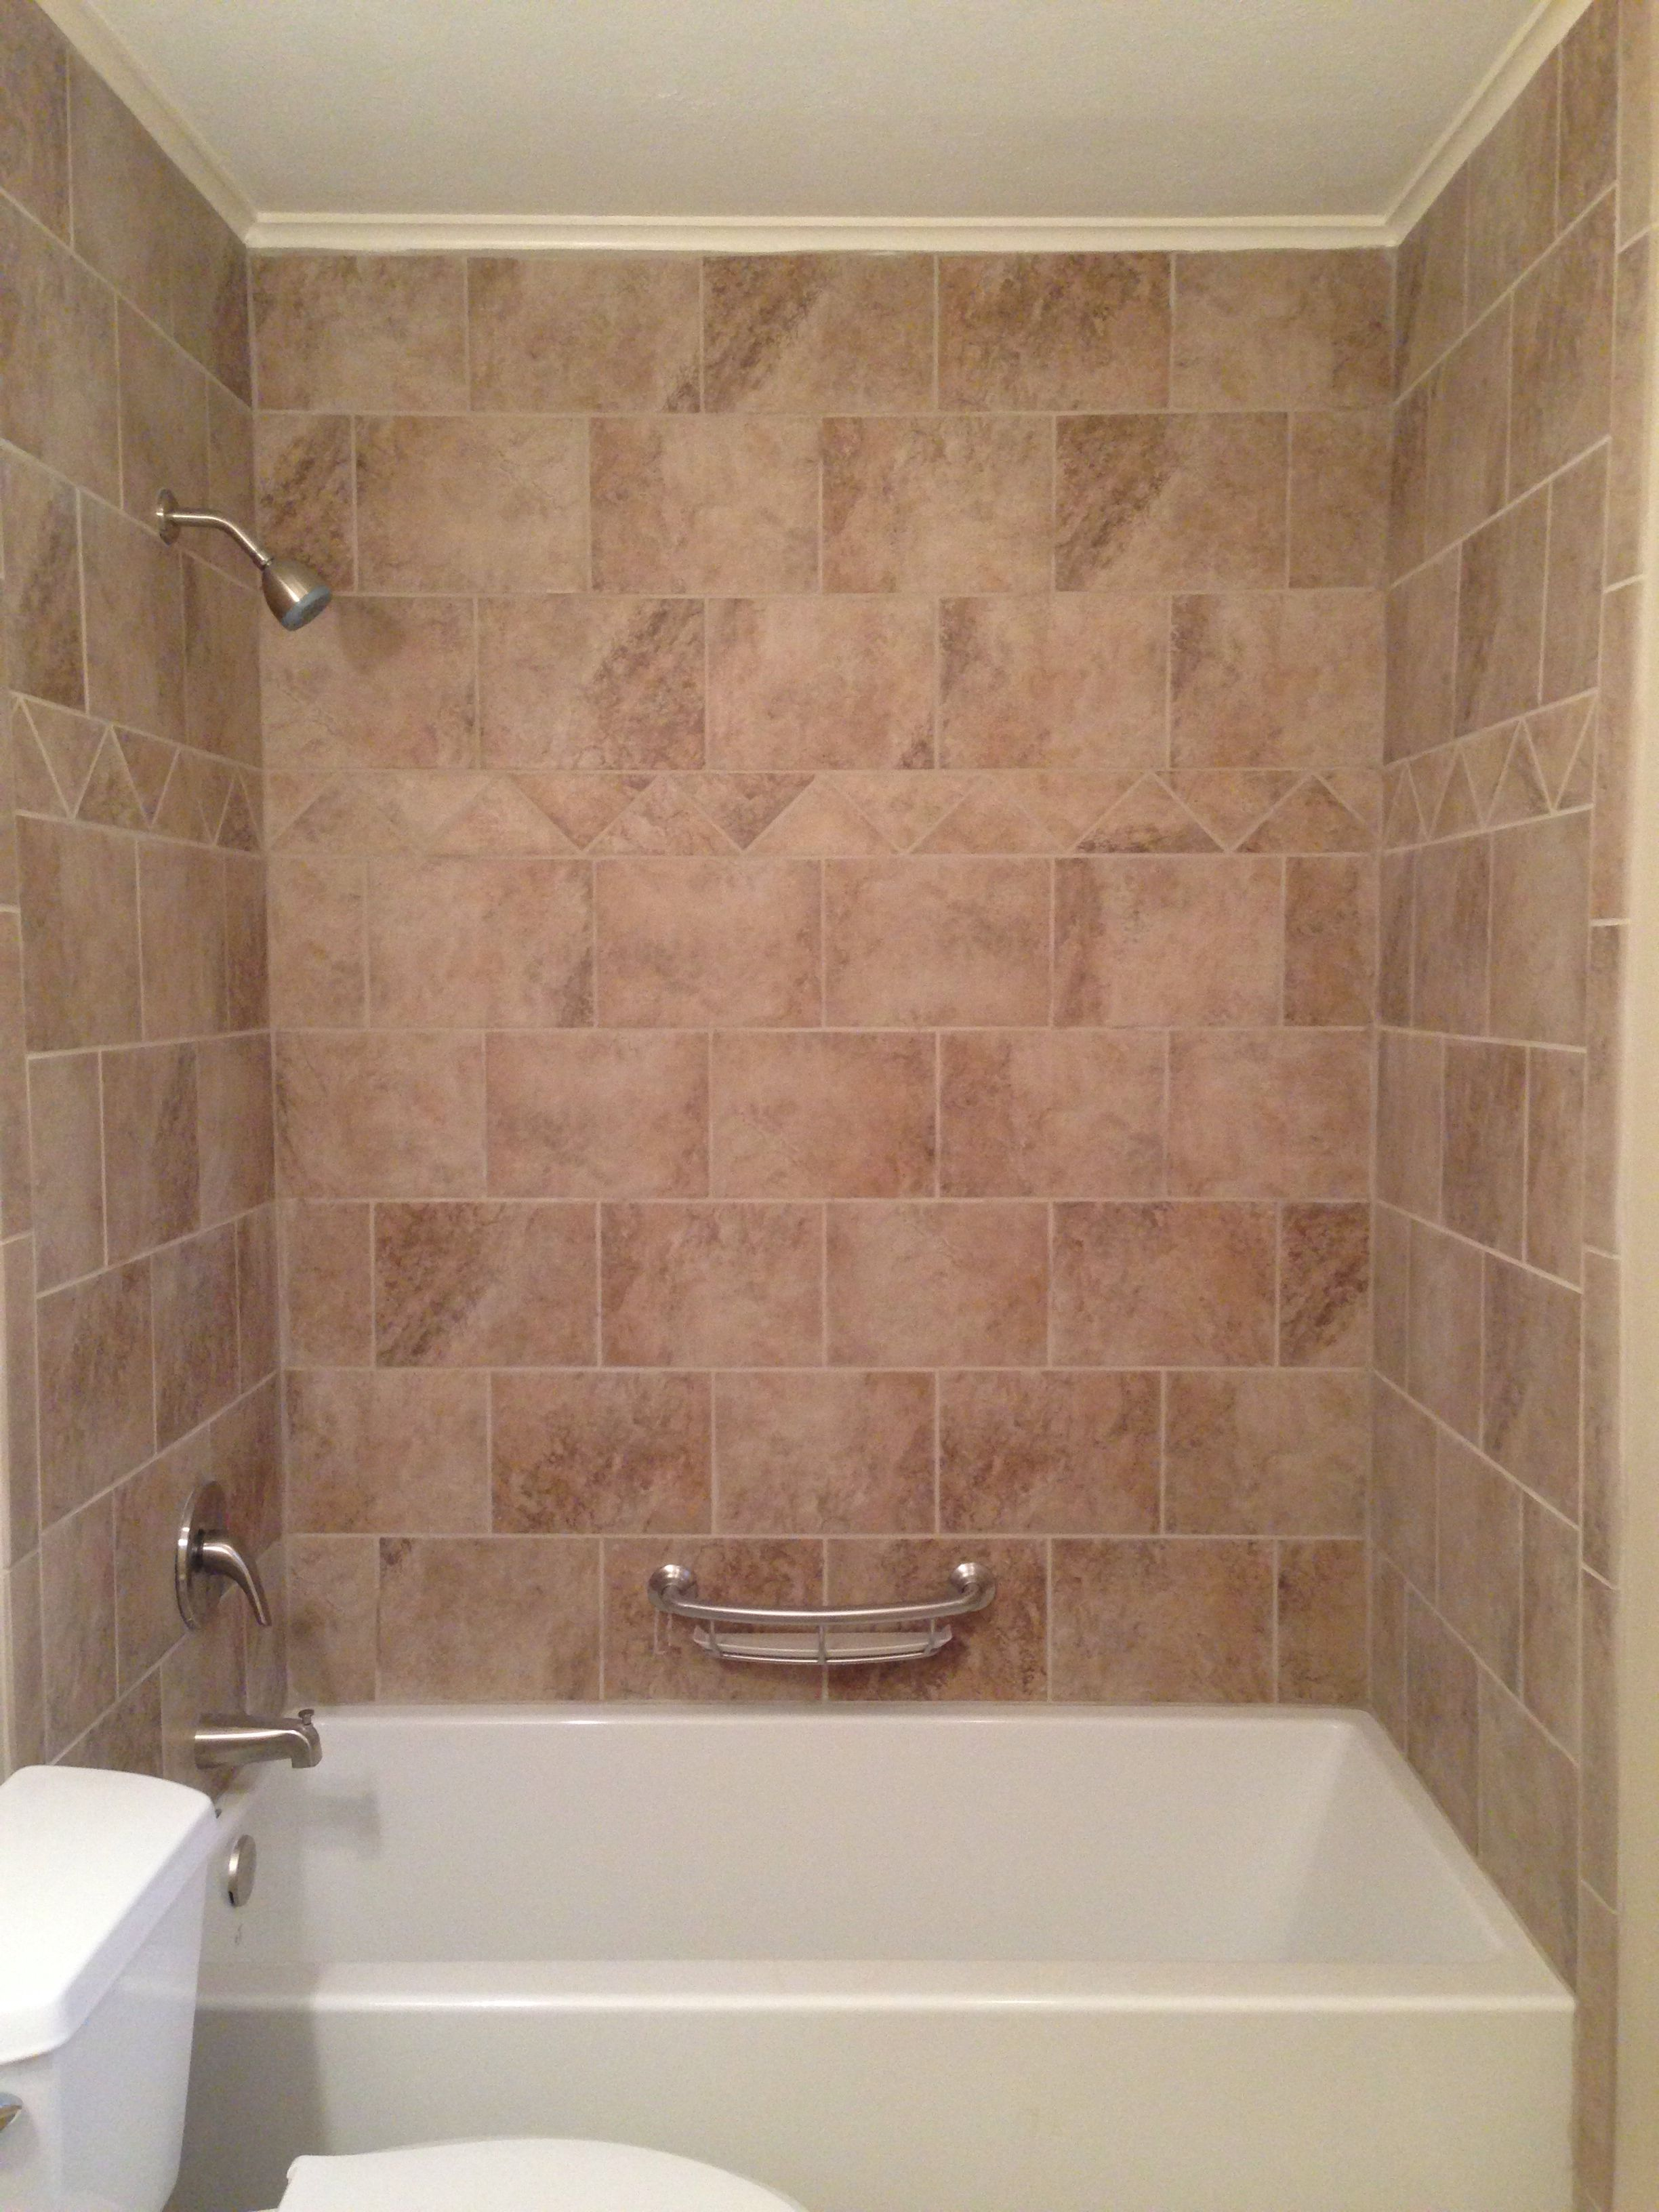 Tile Surround Bathtub. Beige Tile Around Bathtub.